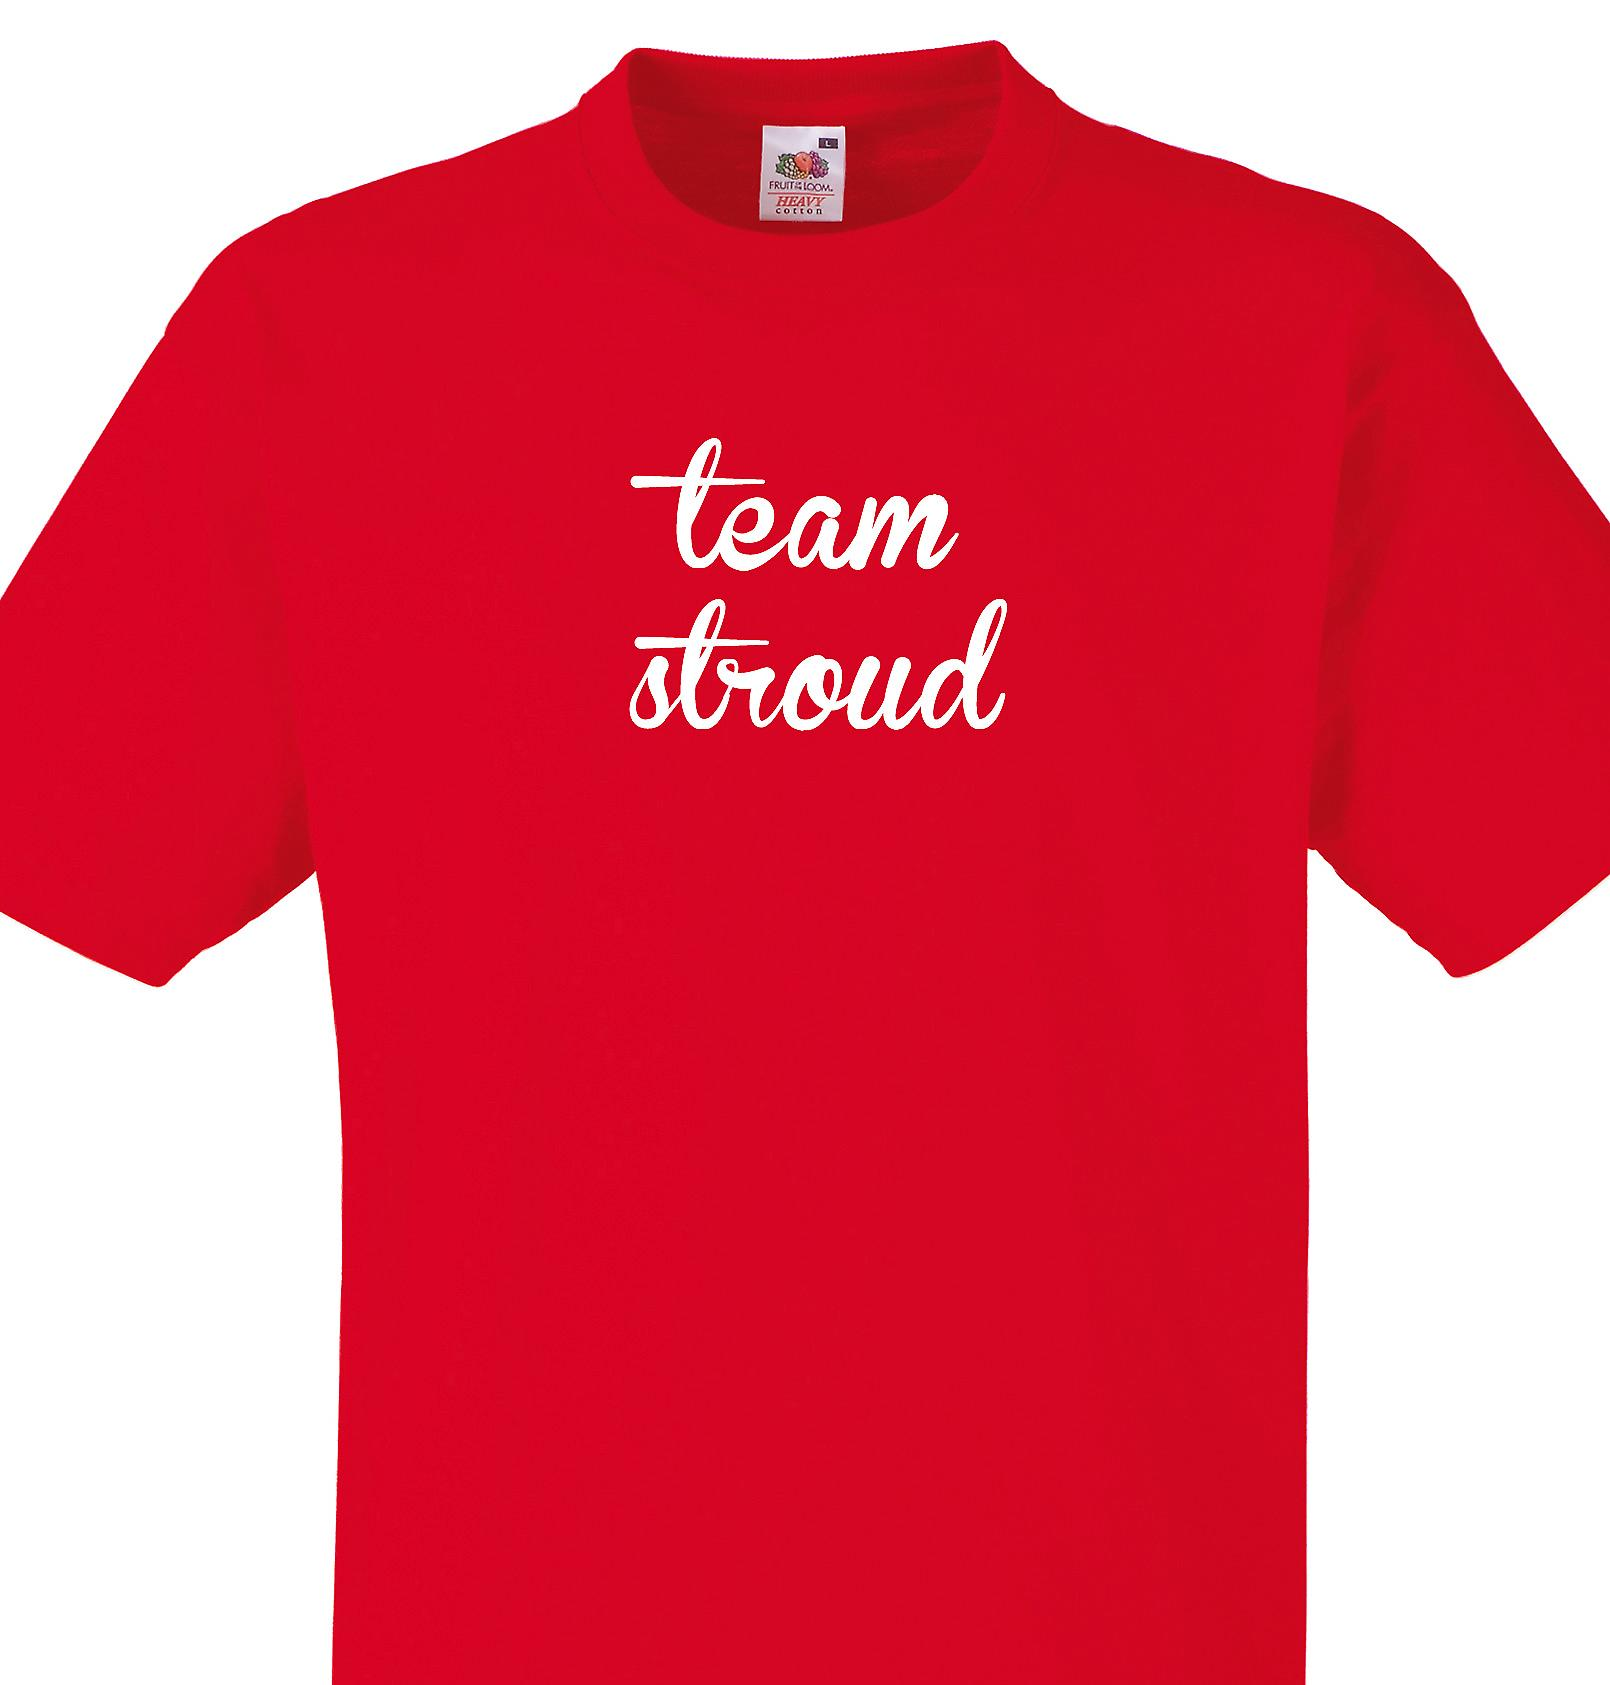 Team Stroud Red T shirt